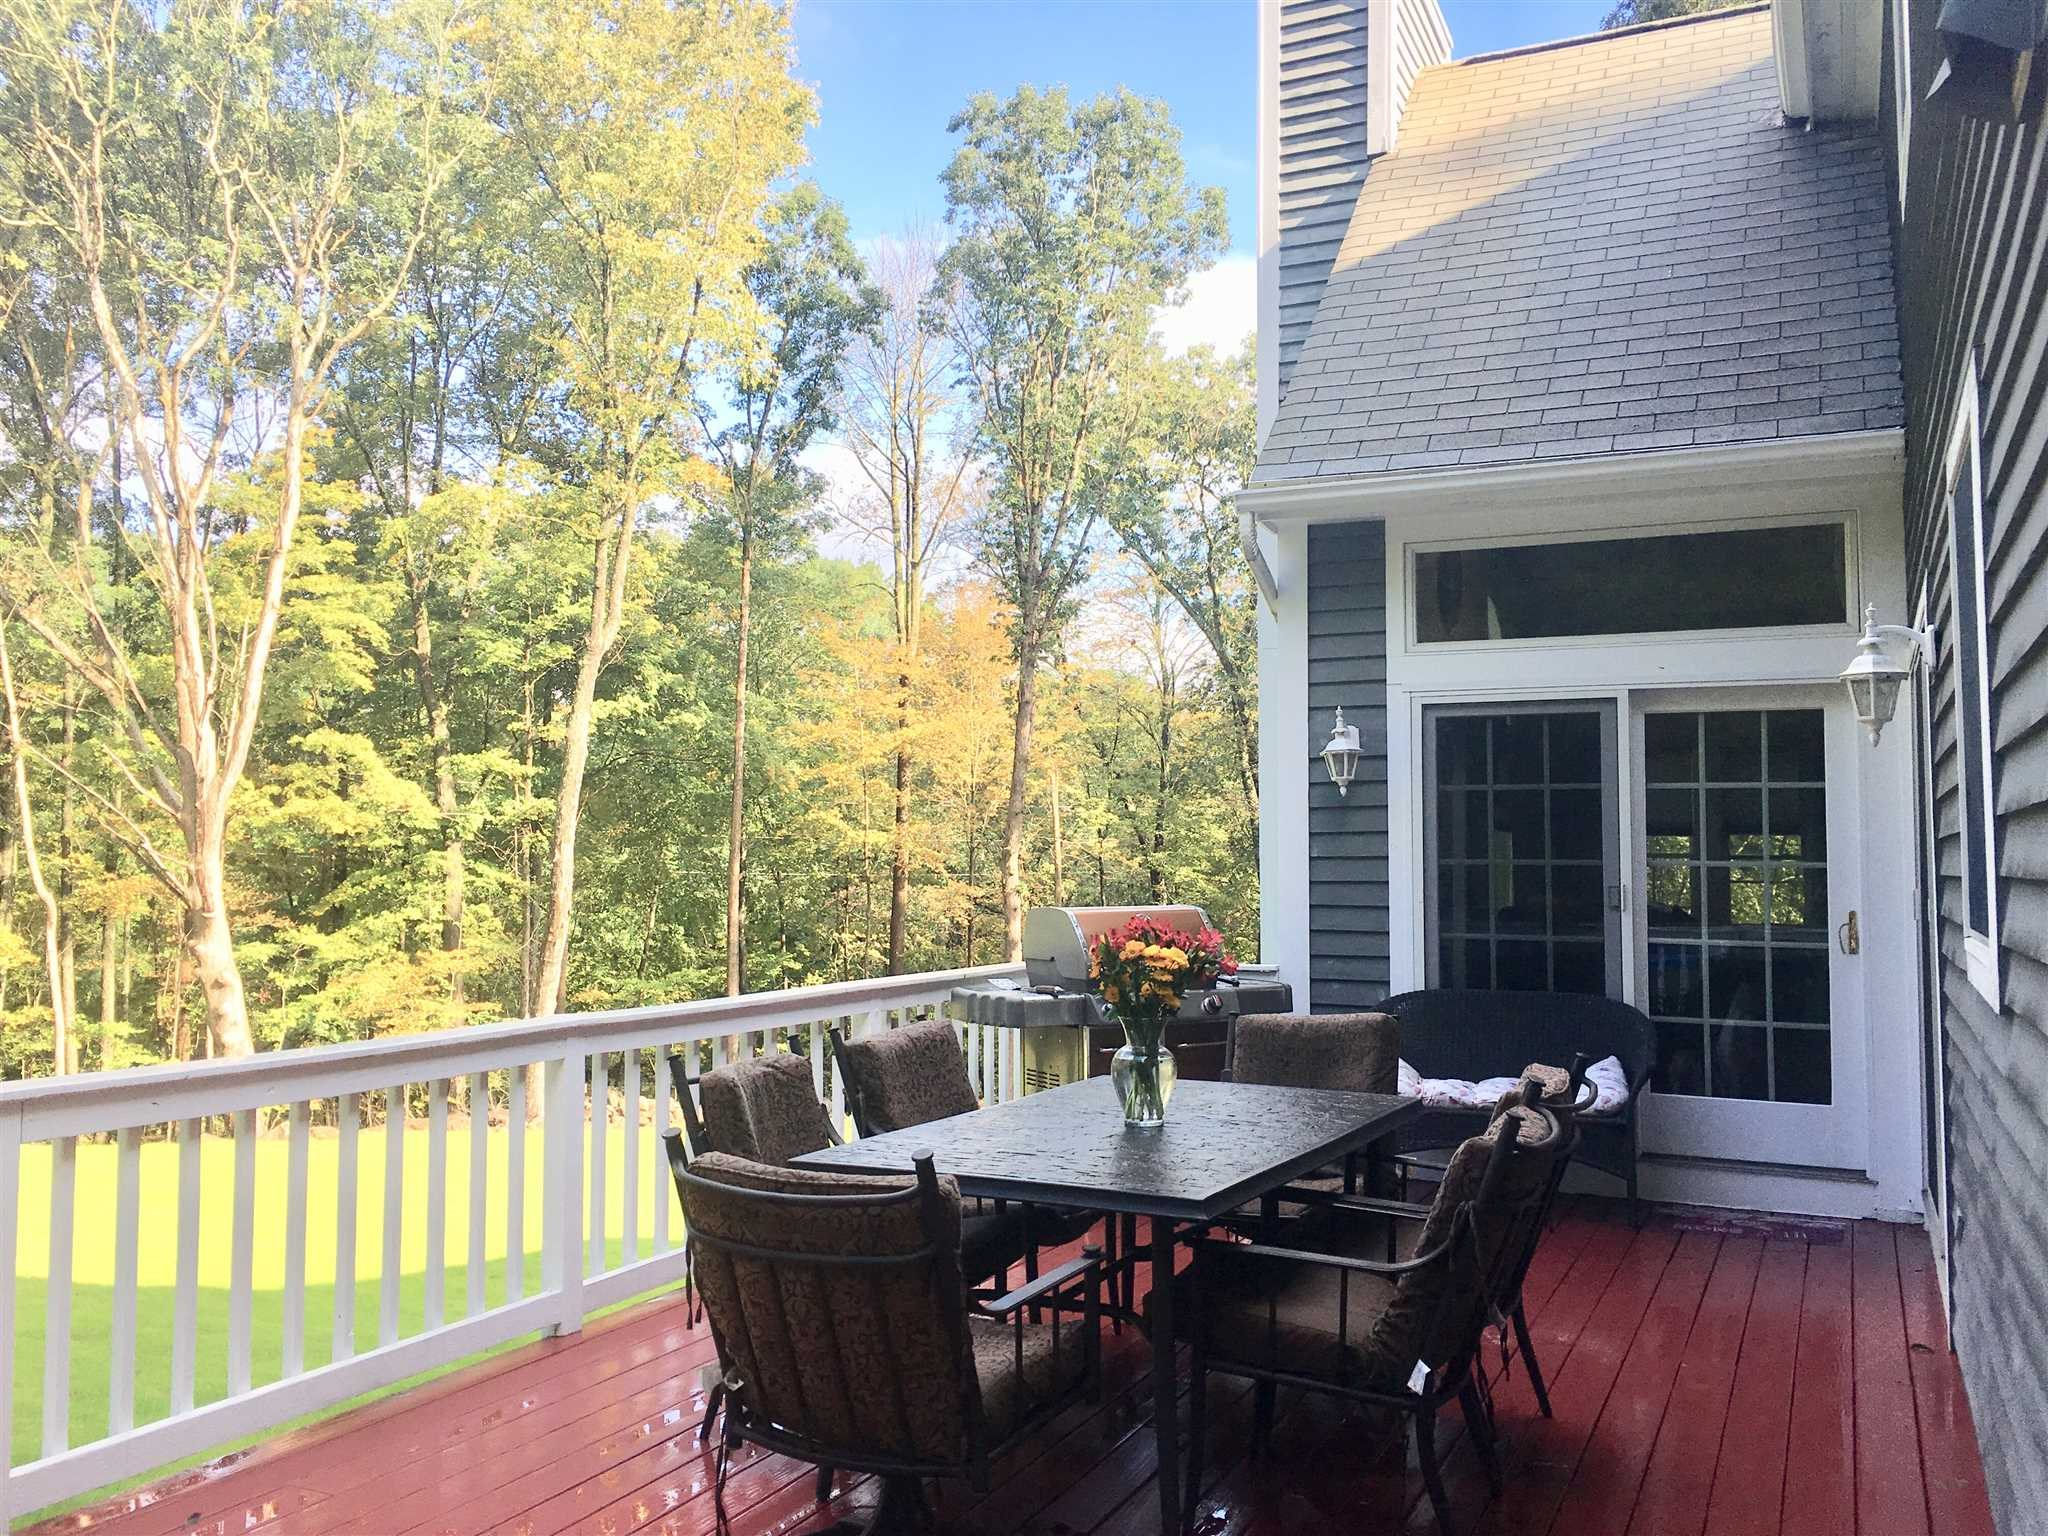 49 SALEM RIDGE ROAD Carmel, NY 10512 - MLS #: 375472